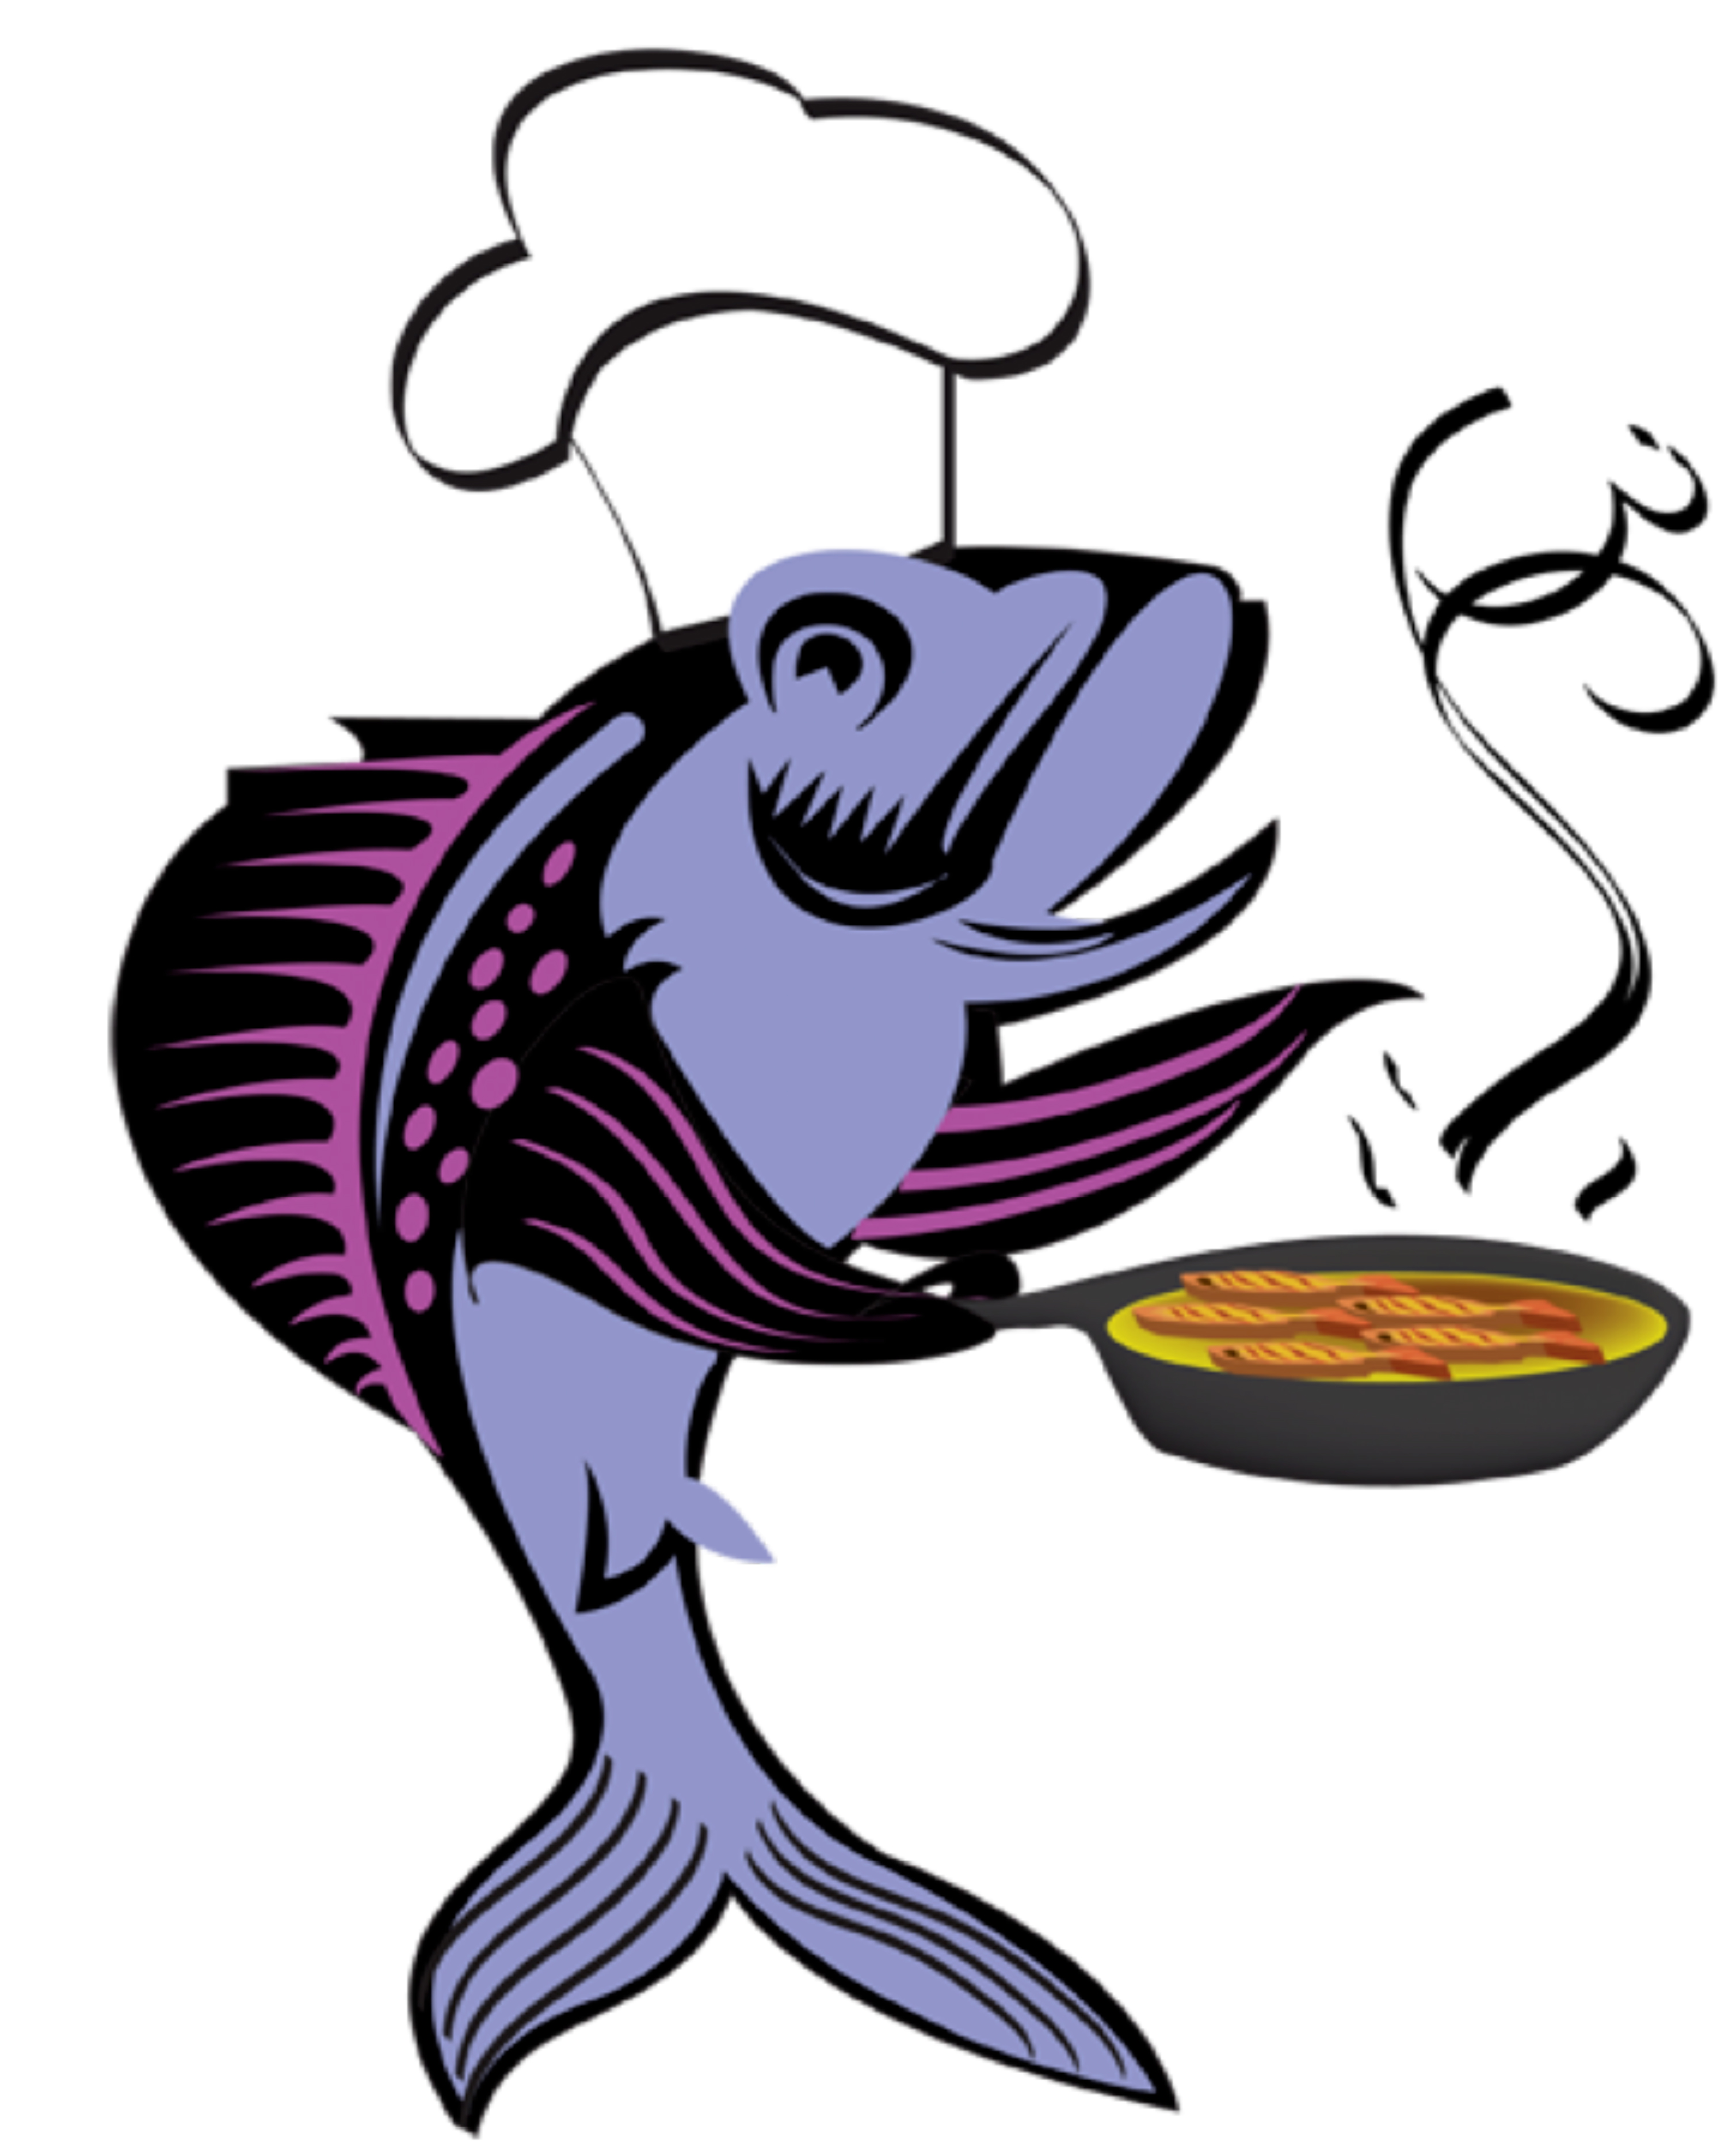 Seafooddinner clipart graphic library download Free Fish Fry Cliparts, Download Free Clip Art, Free Clip Art on ... graphic library download